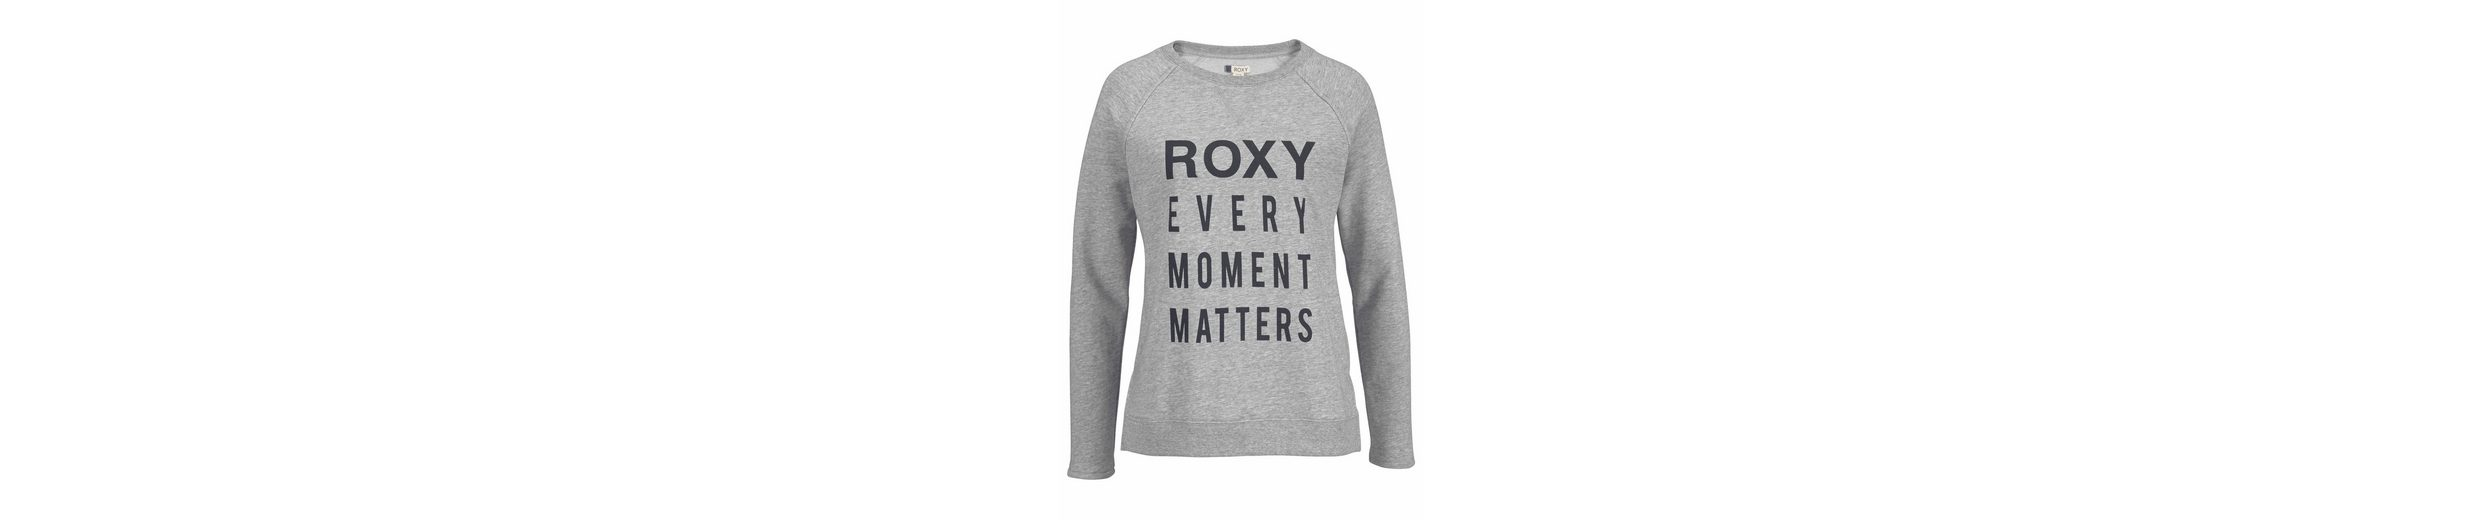 AND AND Sweater Sweater Roxy TURN Roxy Roxy AND TURN GO GO TURN Sweater qwaPaF